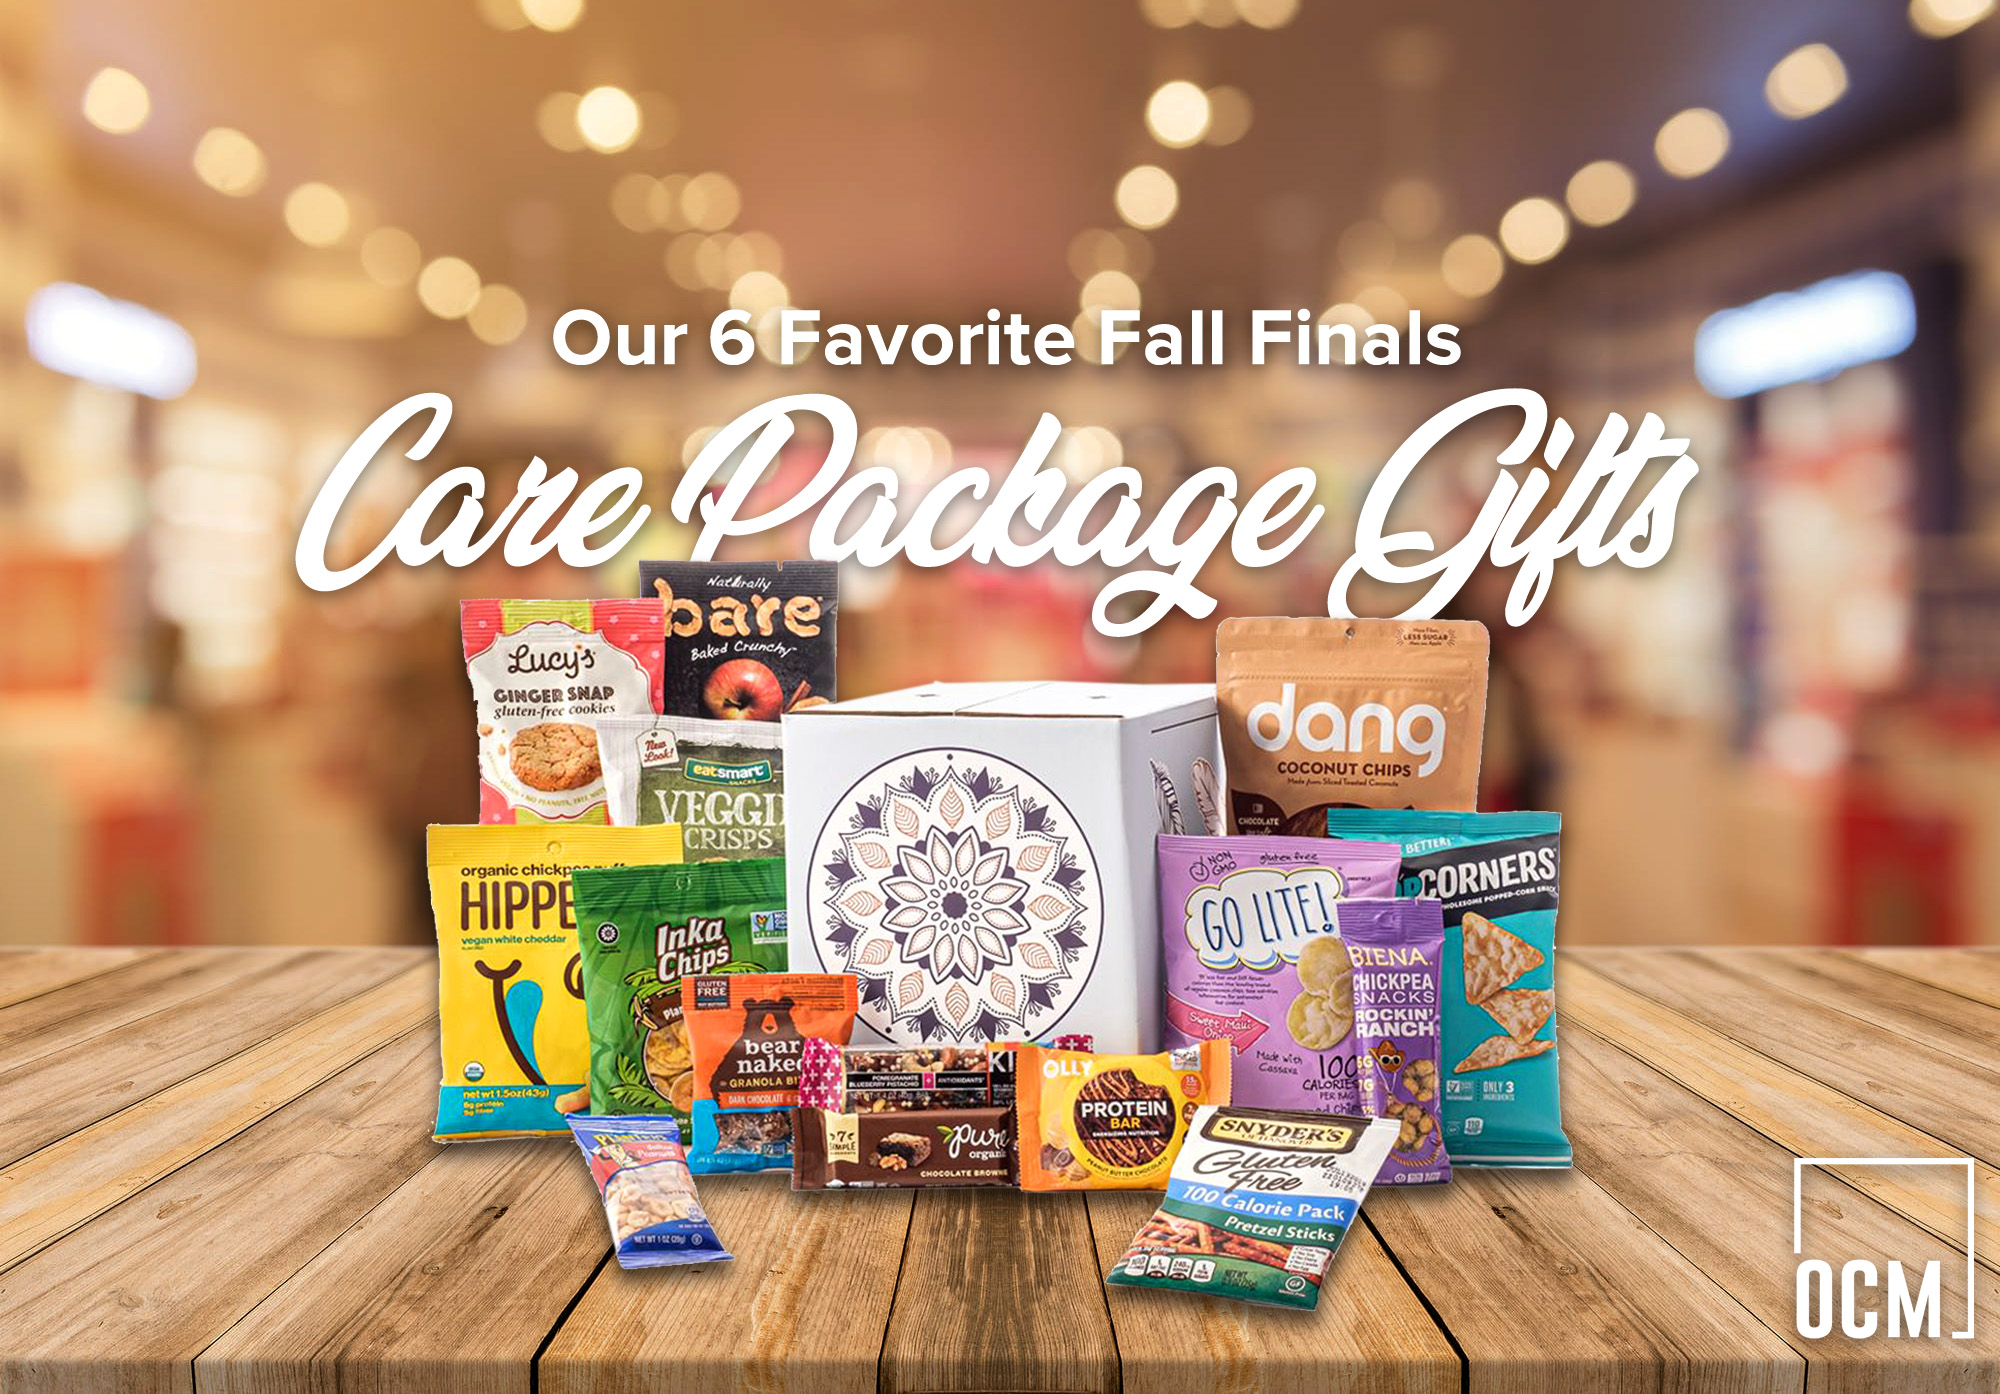 Our 6 Favorite Fall Finals Care Package Gifts